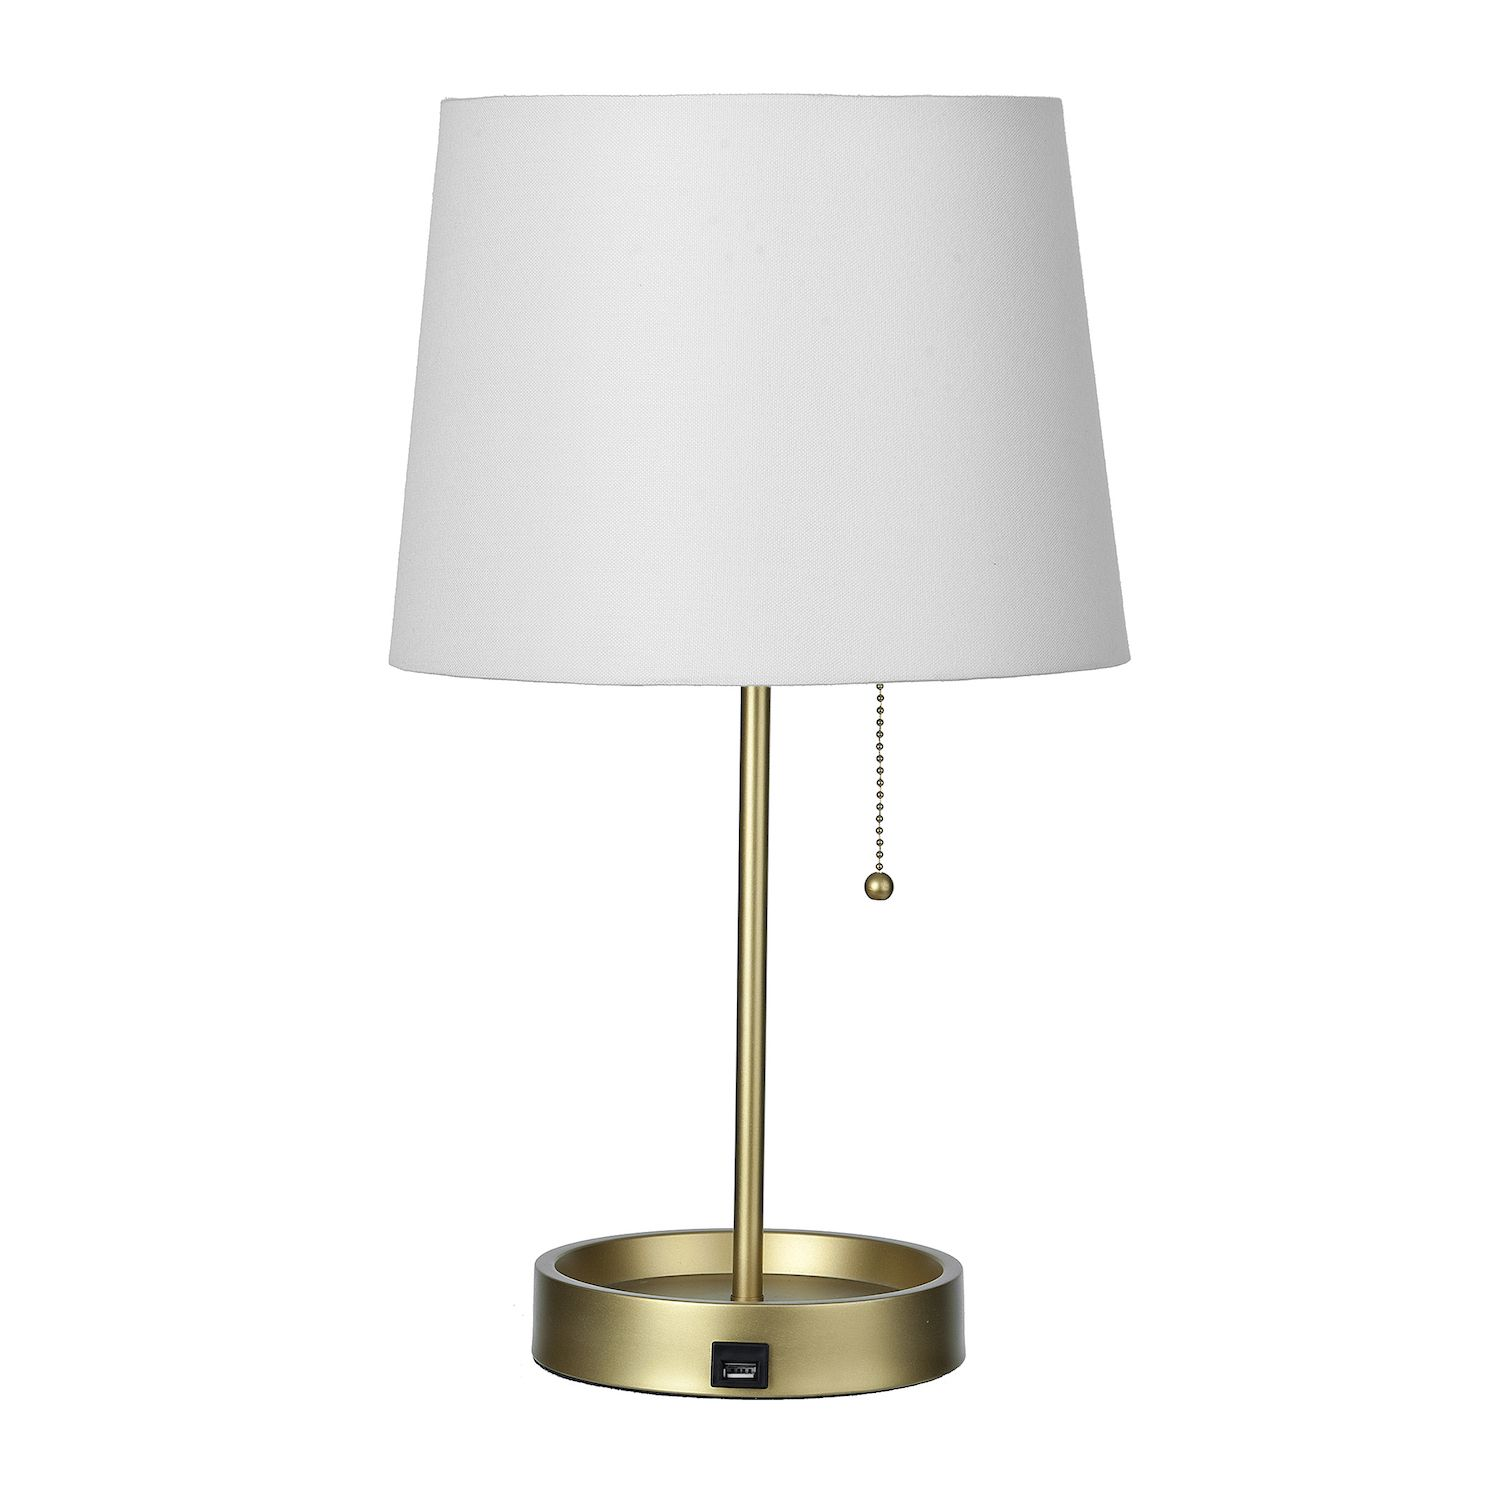 Stylish Lamps Stylish Lighting With A Charging Station Make This Lamp A Perfect